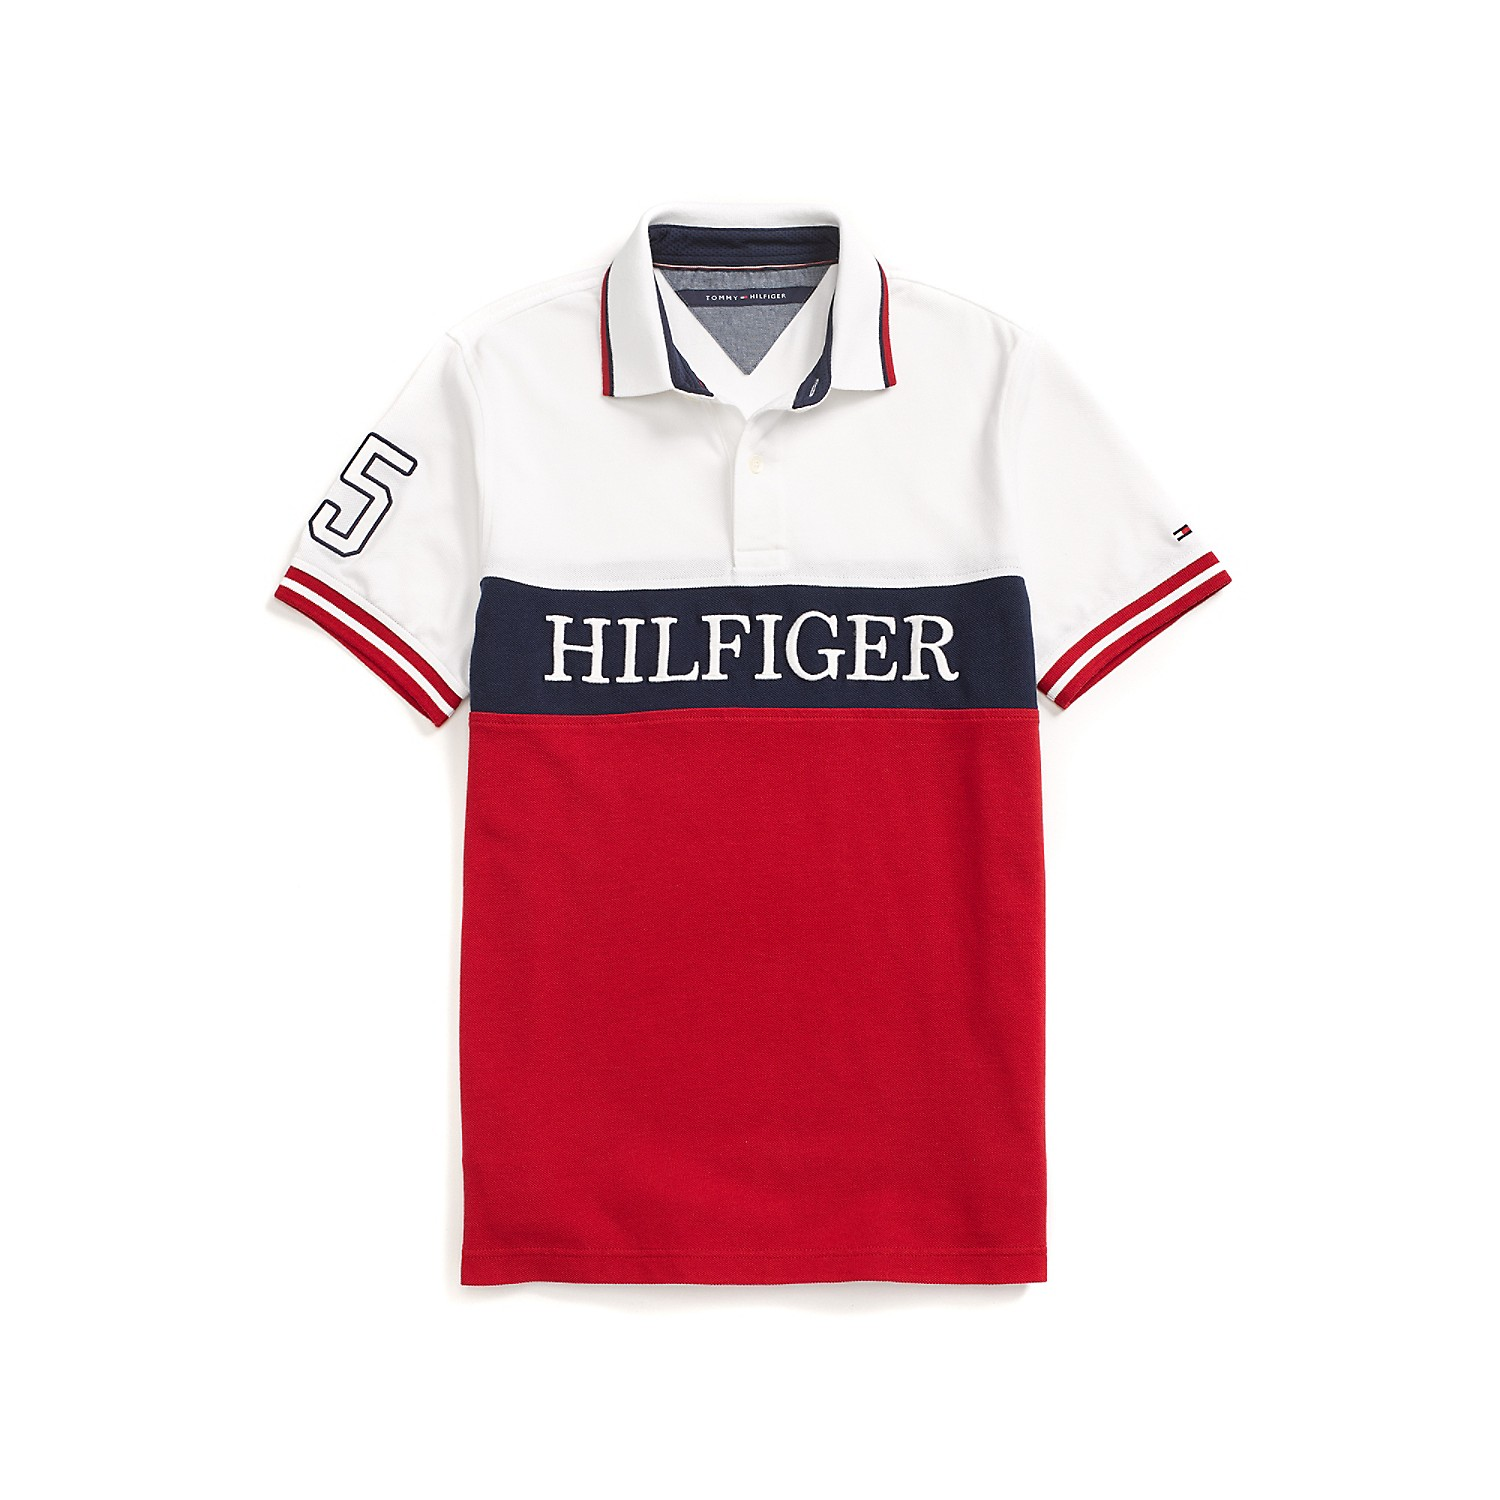 4196be6580379 Tipo Polo Tommy Hilfiger - Madeira ropa importada